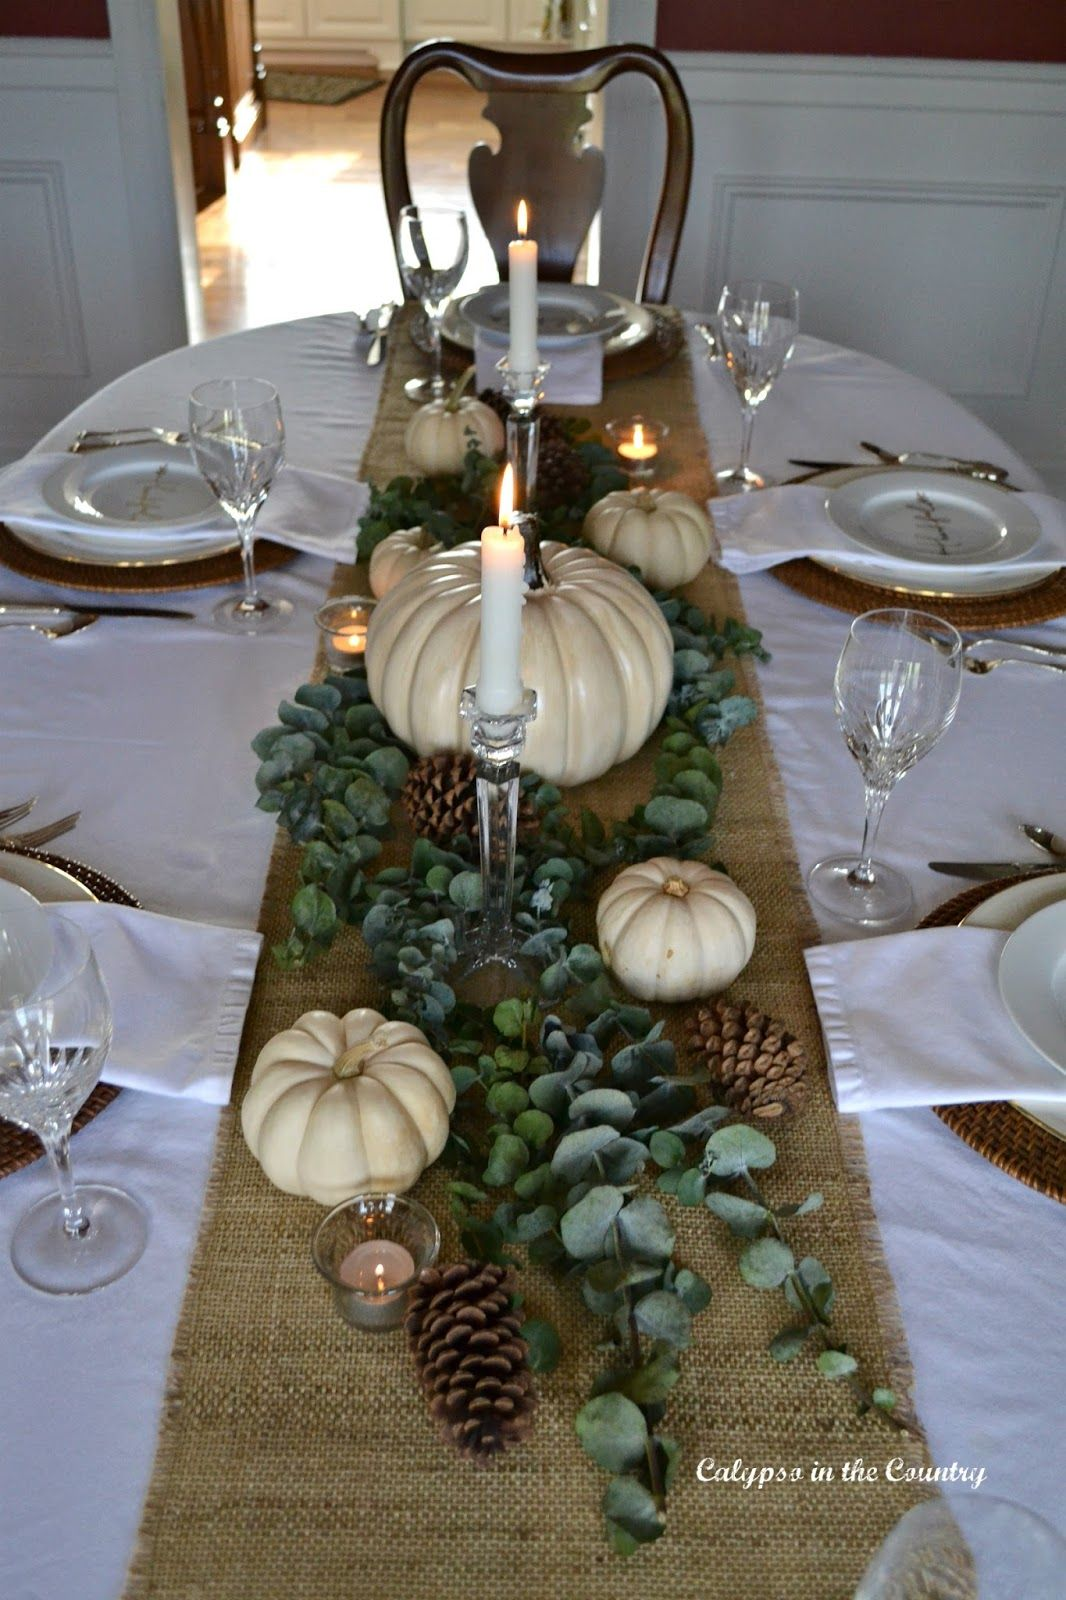 Thanksgiving Table Setting with White Pumpkins.  A fall table set for Thanksgiving.  #whitepumpkins #falltable #thanksgiving #thanksgivingtable #entertainingideas #neutraldecor #thanksgivingtablesettings